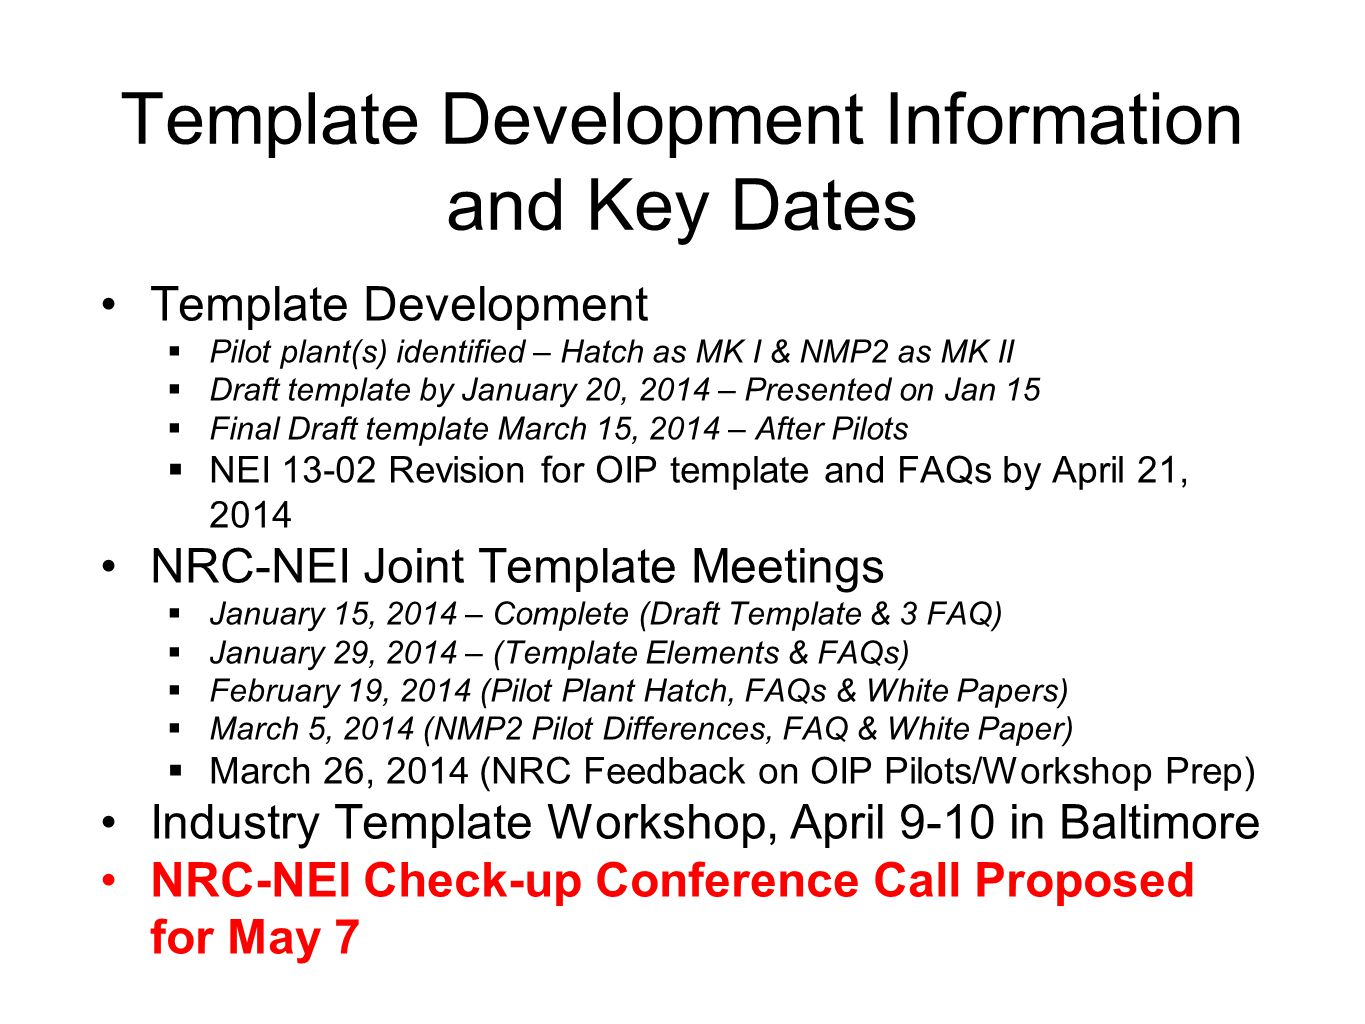 Template Development Information and Key Dates